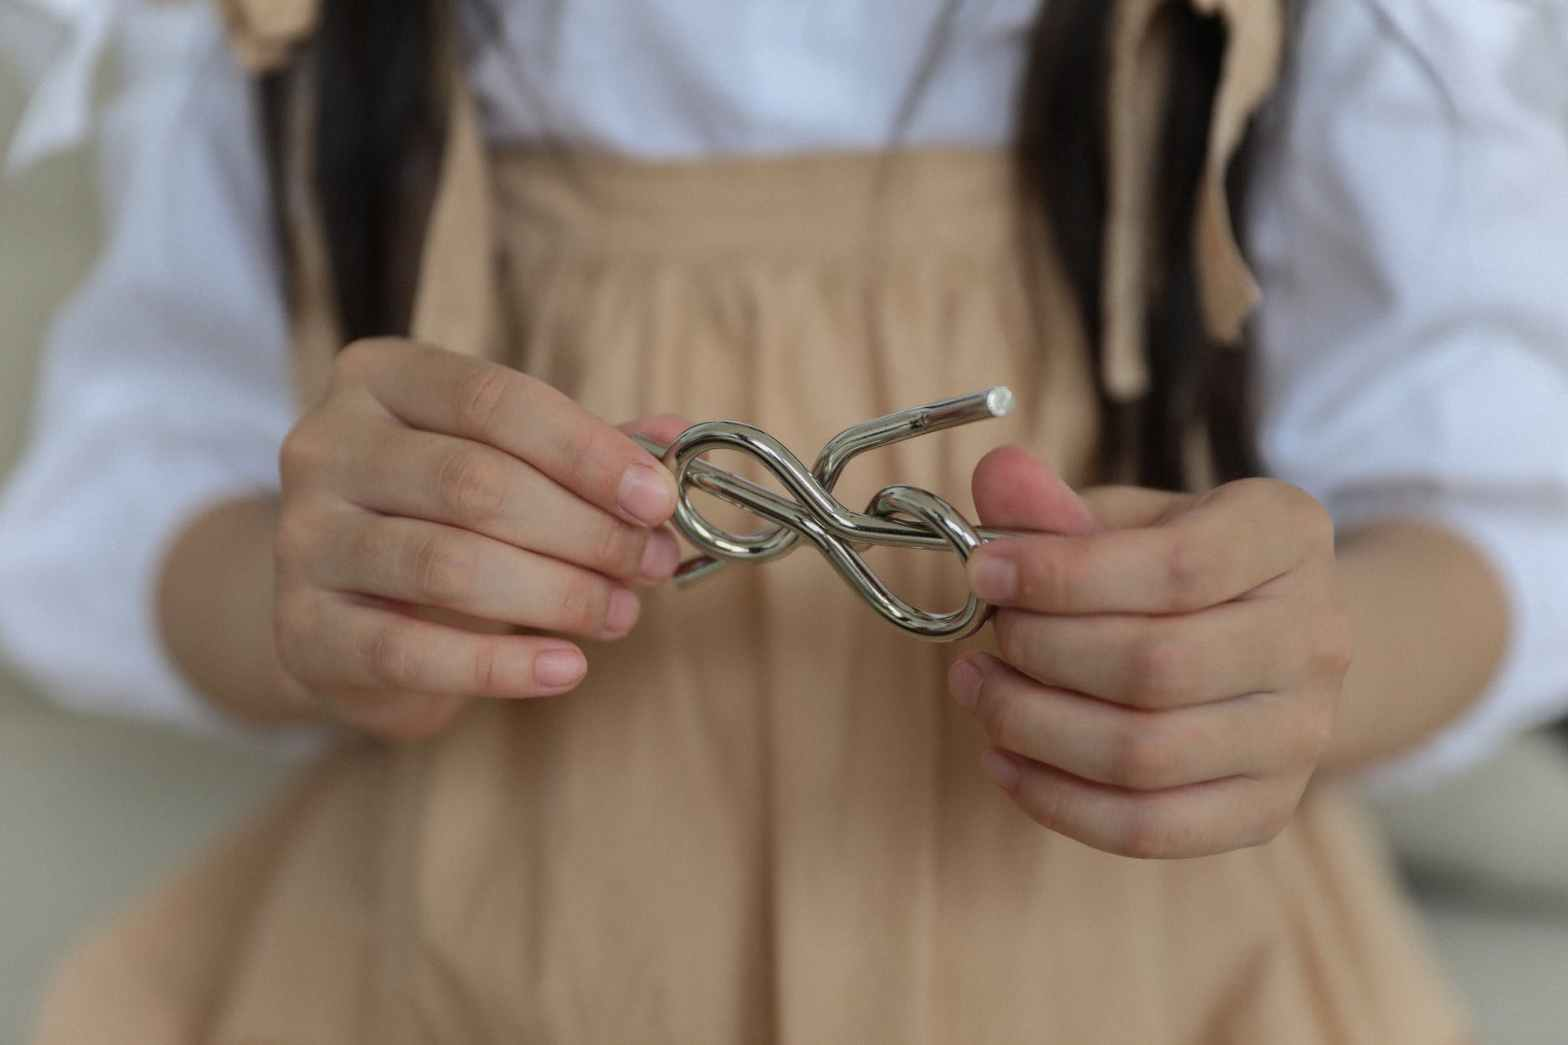 crop little girl holding metal knot teaser